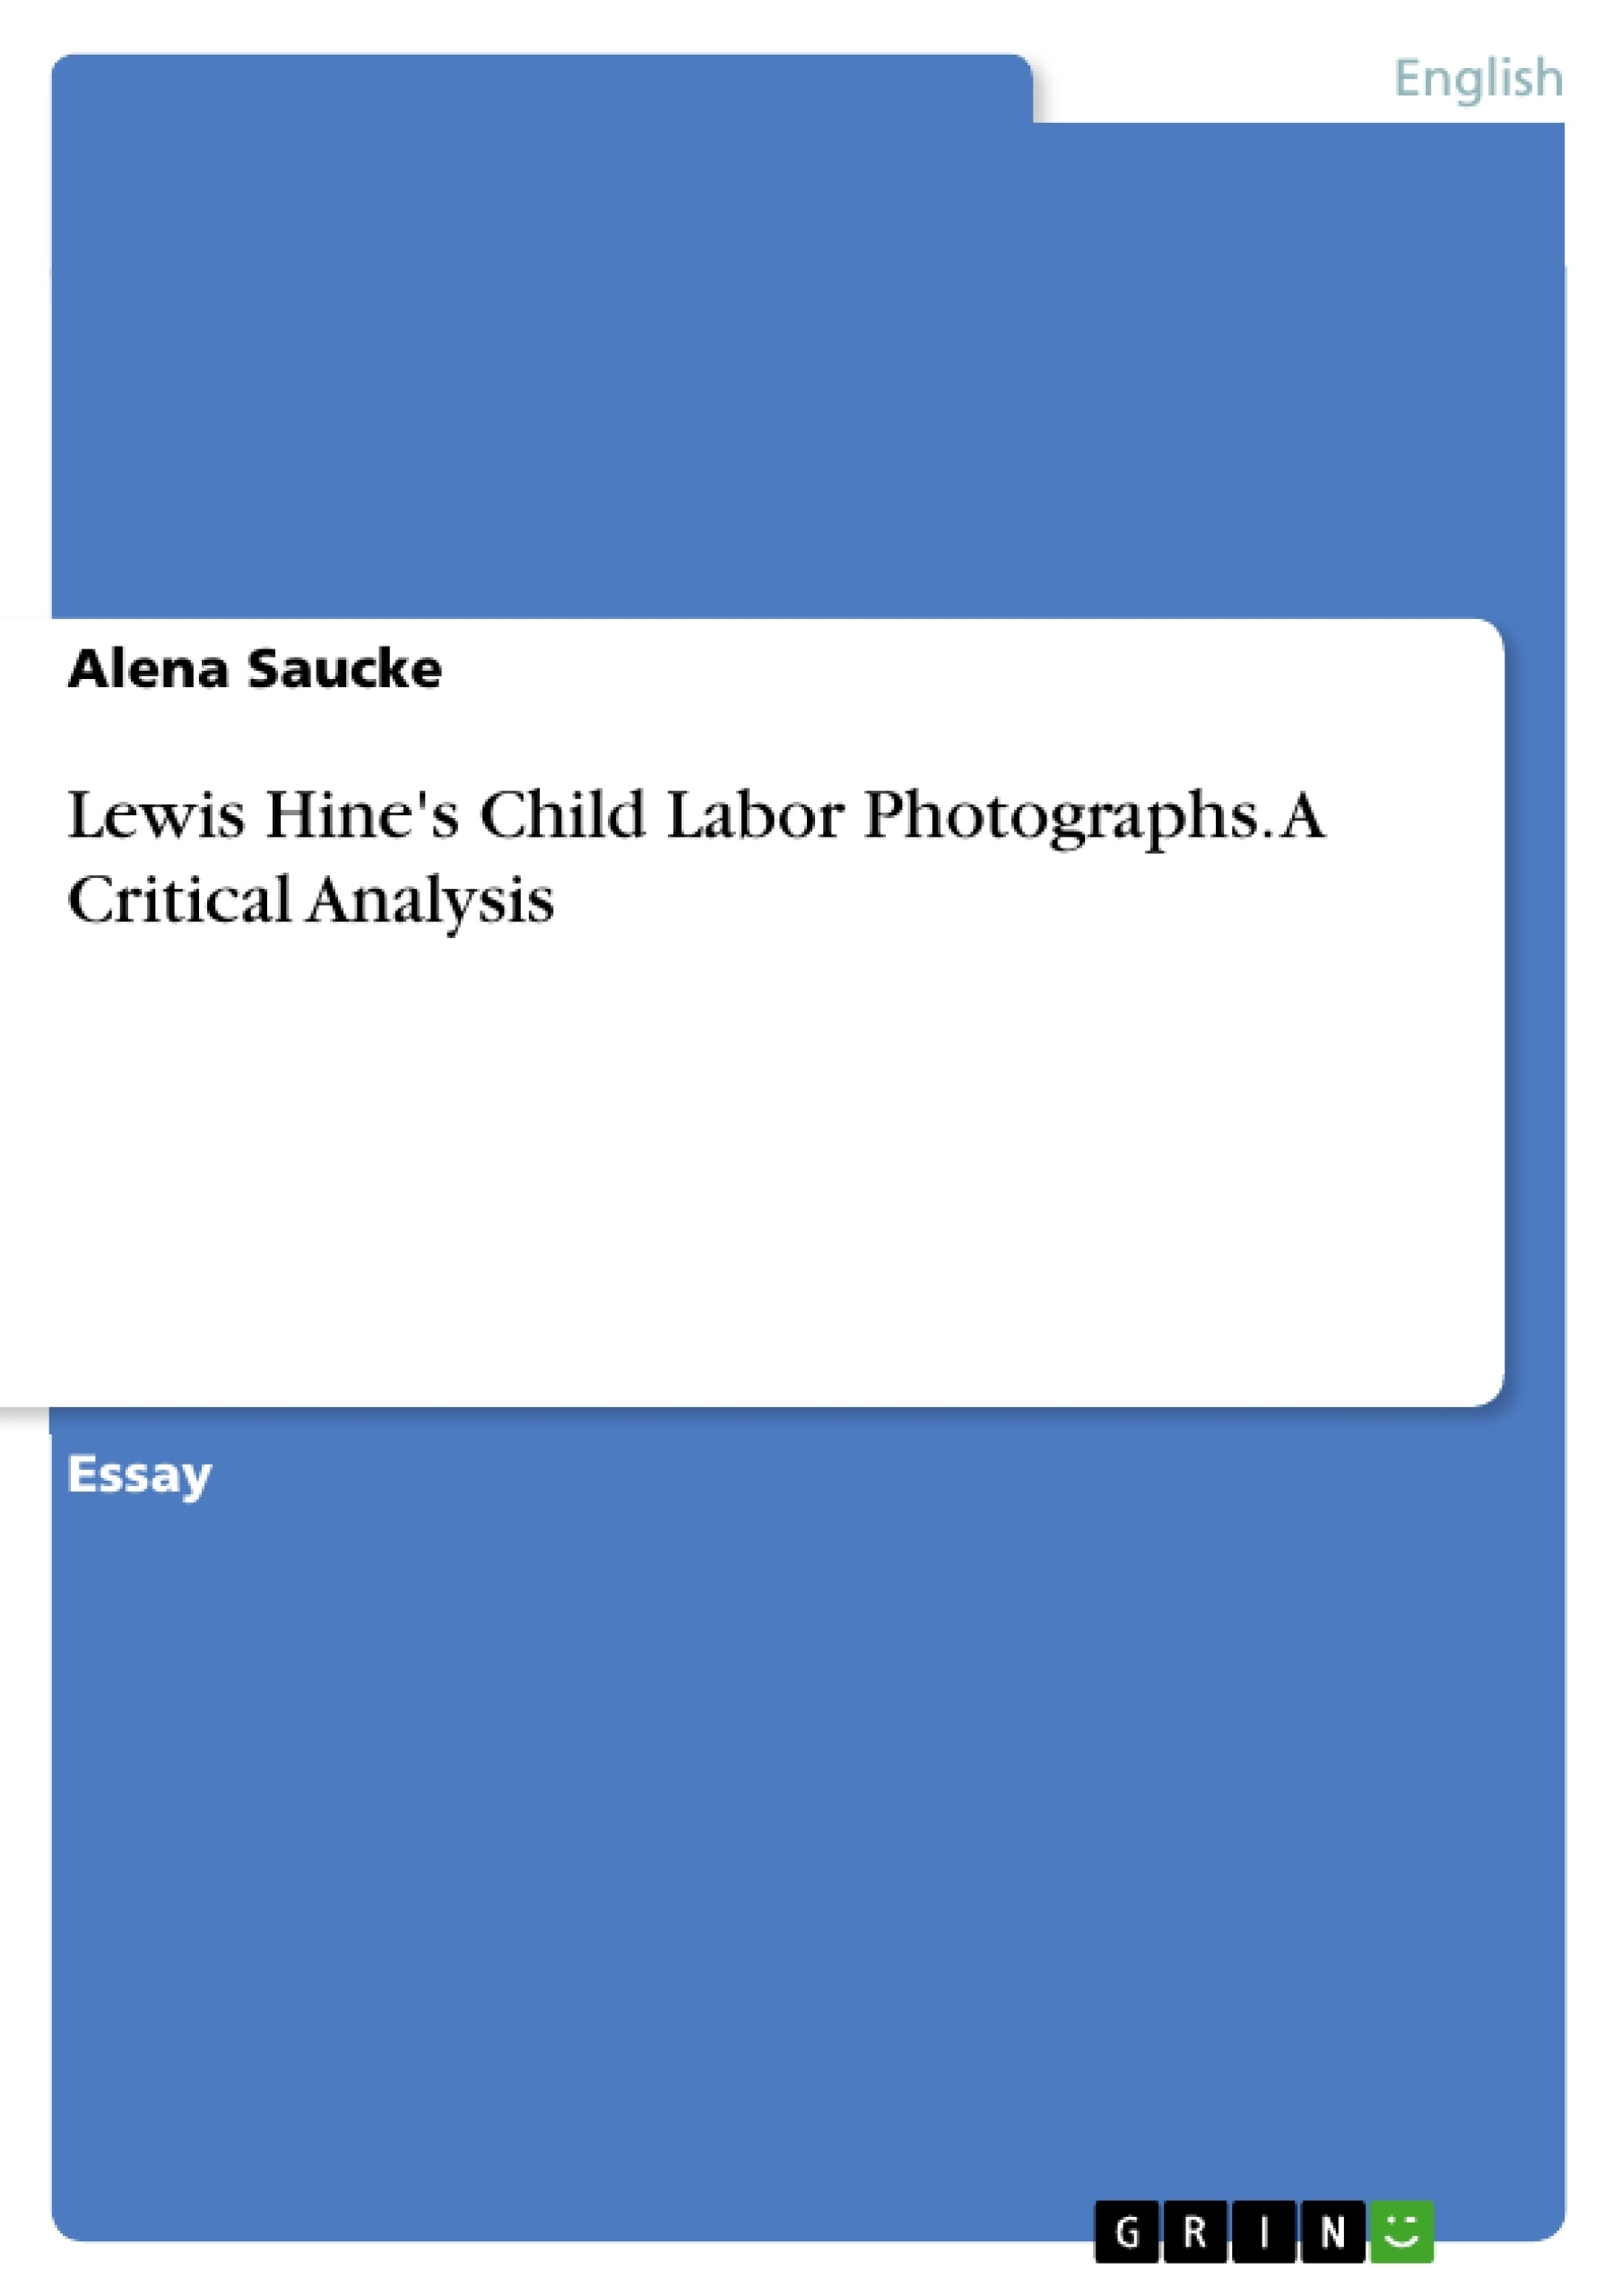 Title: Lewis Hine's Child Labor Photographs. A Critical Analysis